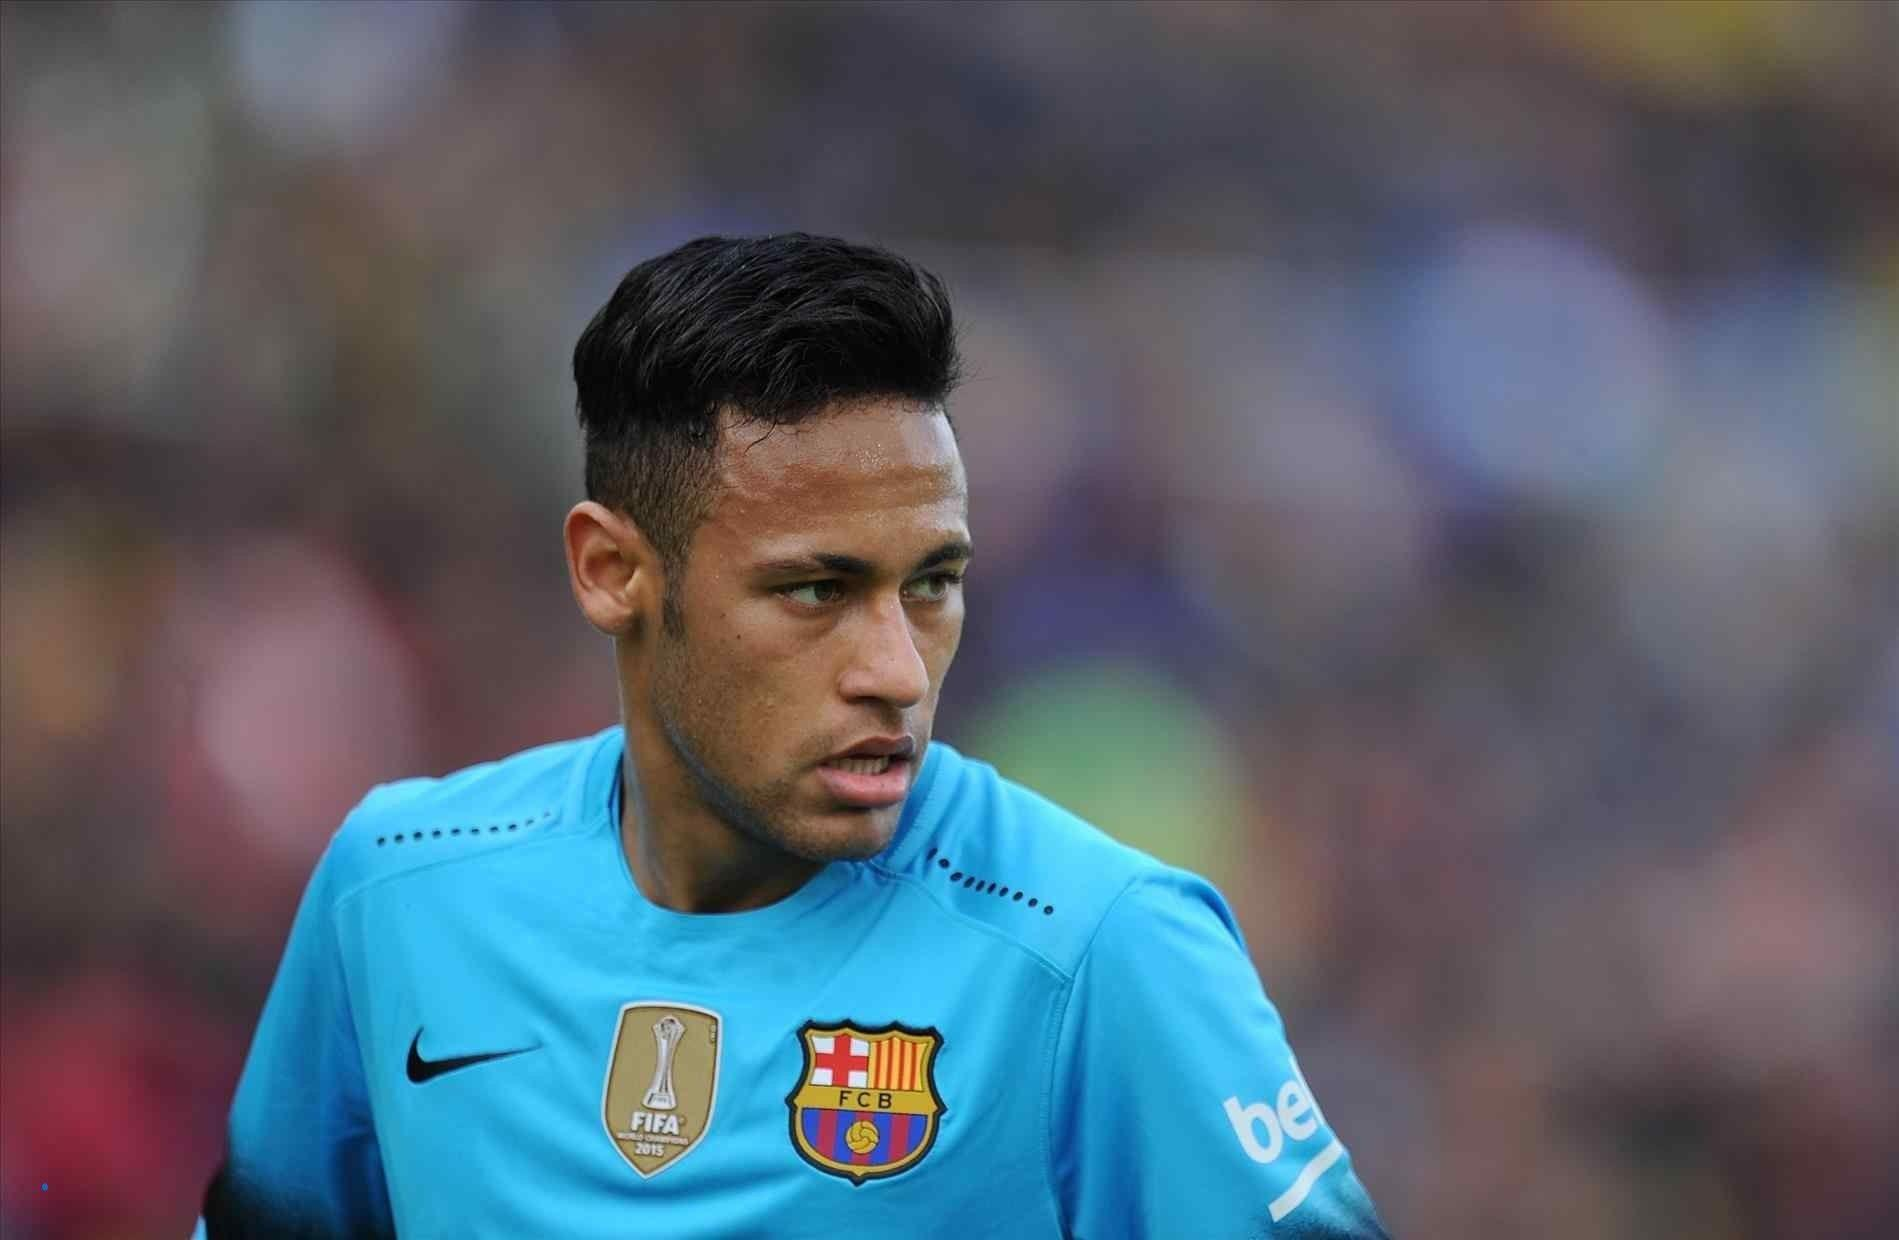 Neymar Hairstyle Wallpapers Wallpaper Cave